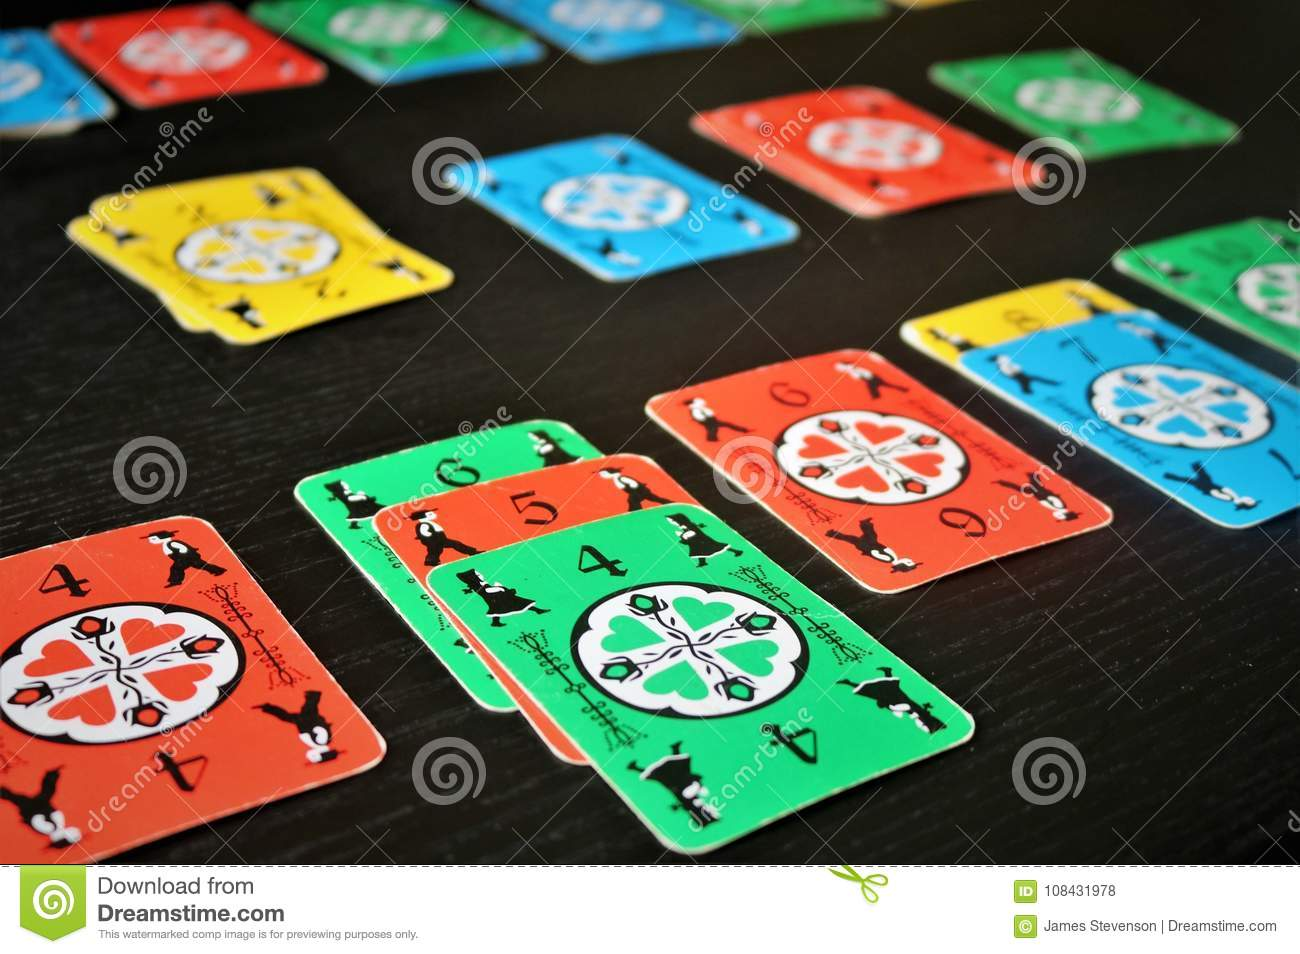 Dutch Blitz Is Good Card Game For Family Editorial Stock Photo